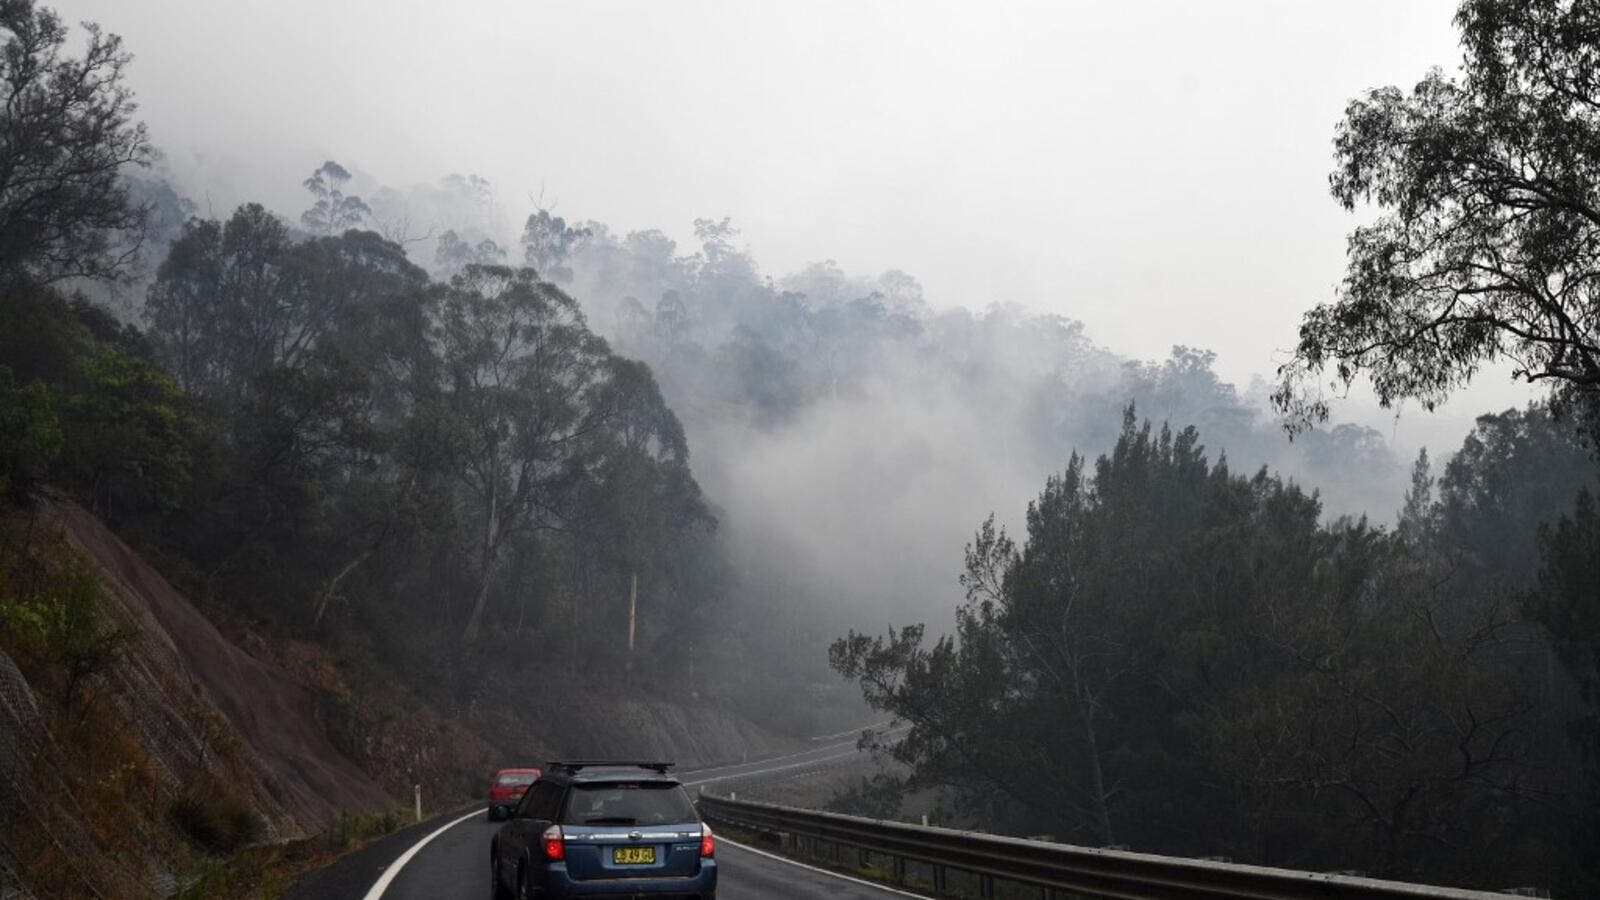 United States  sends more firefighters to help battle Australia blazes